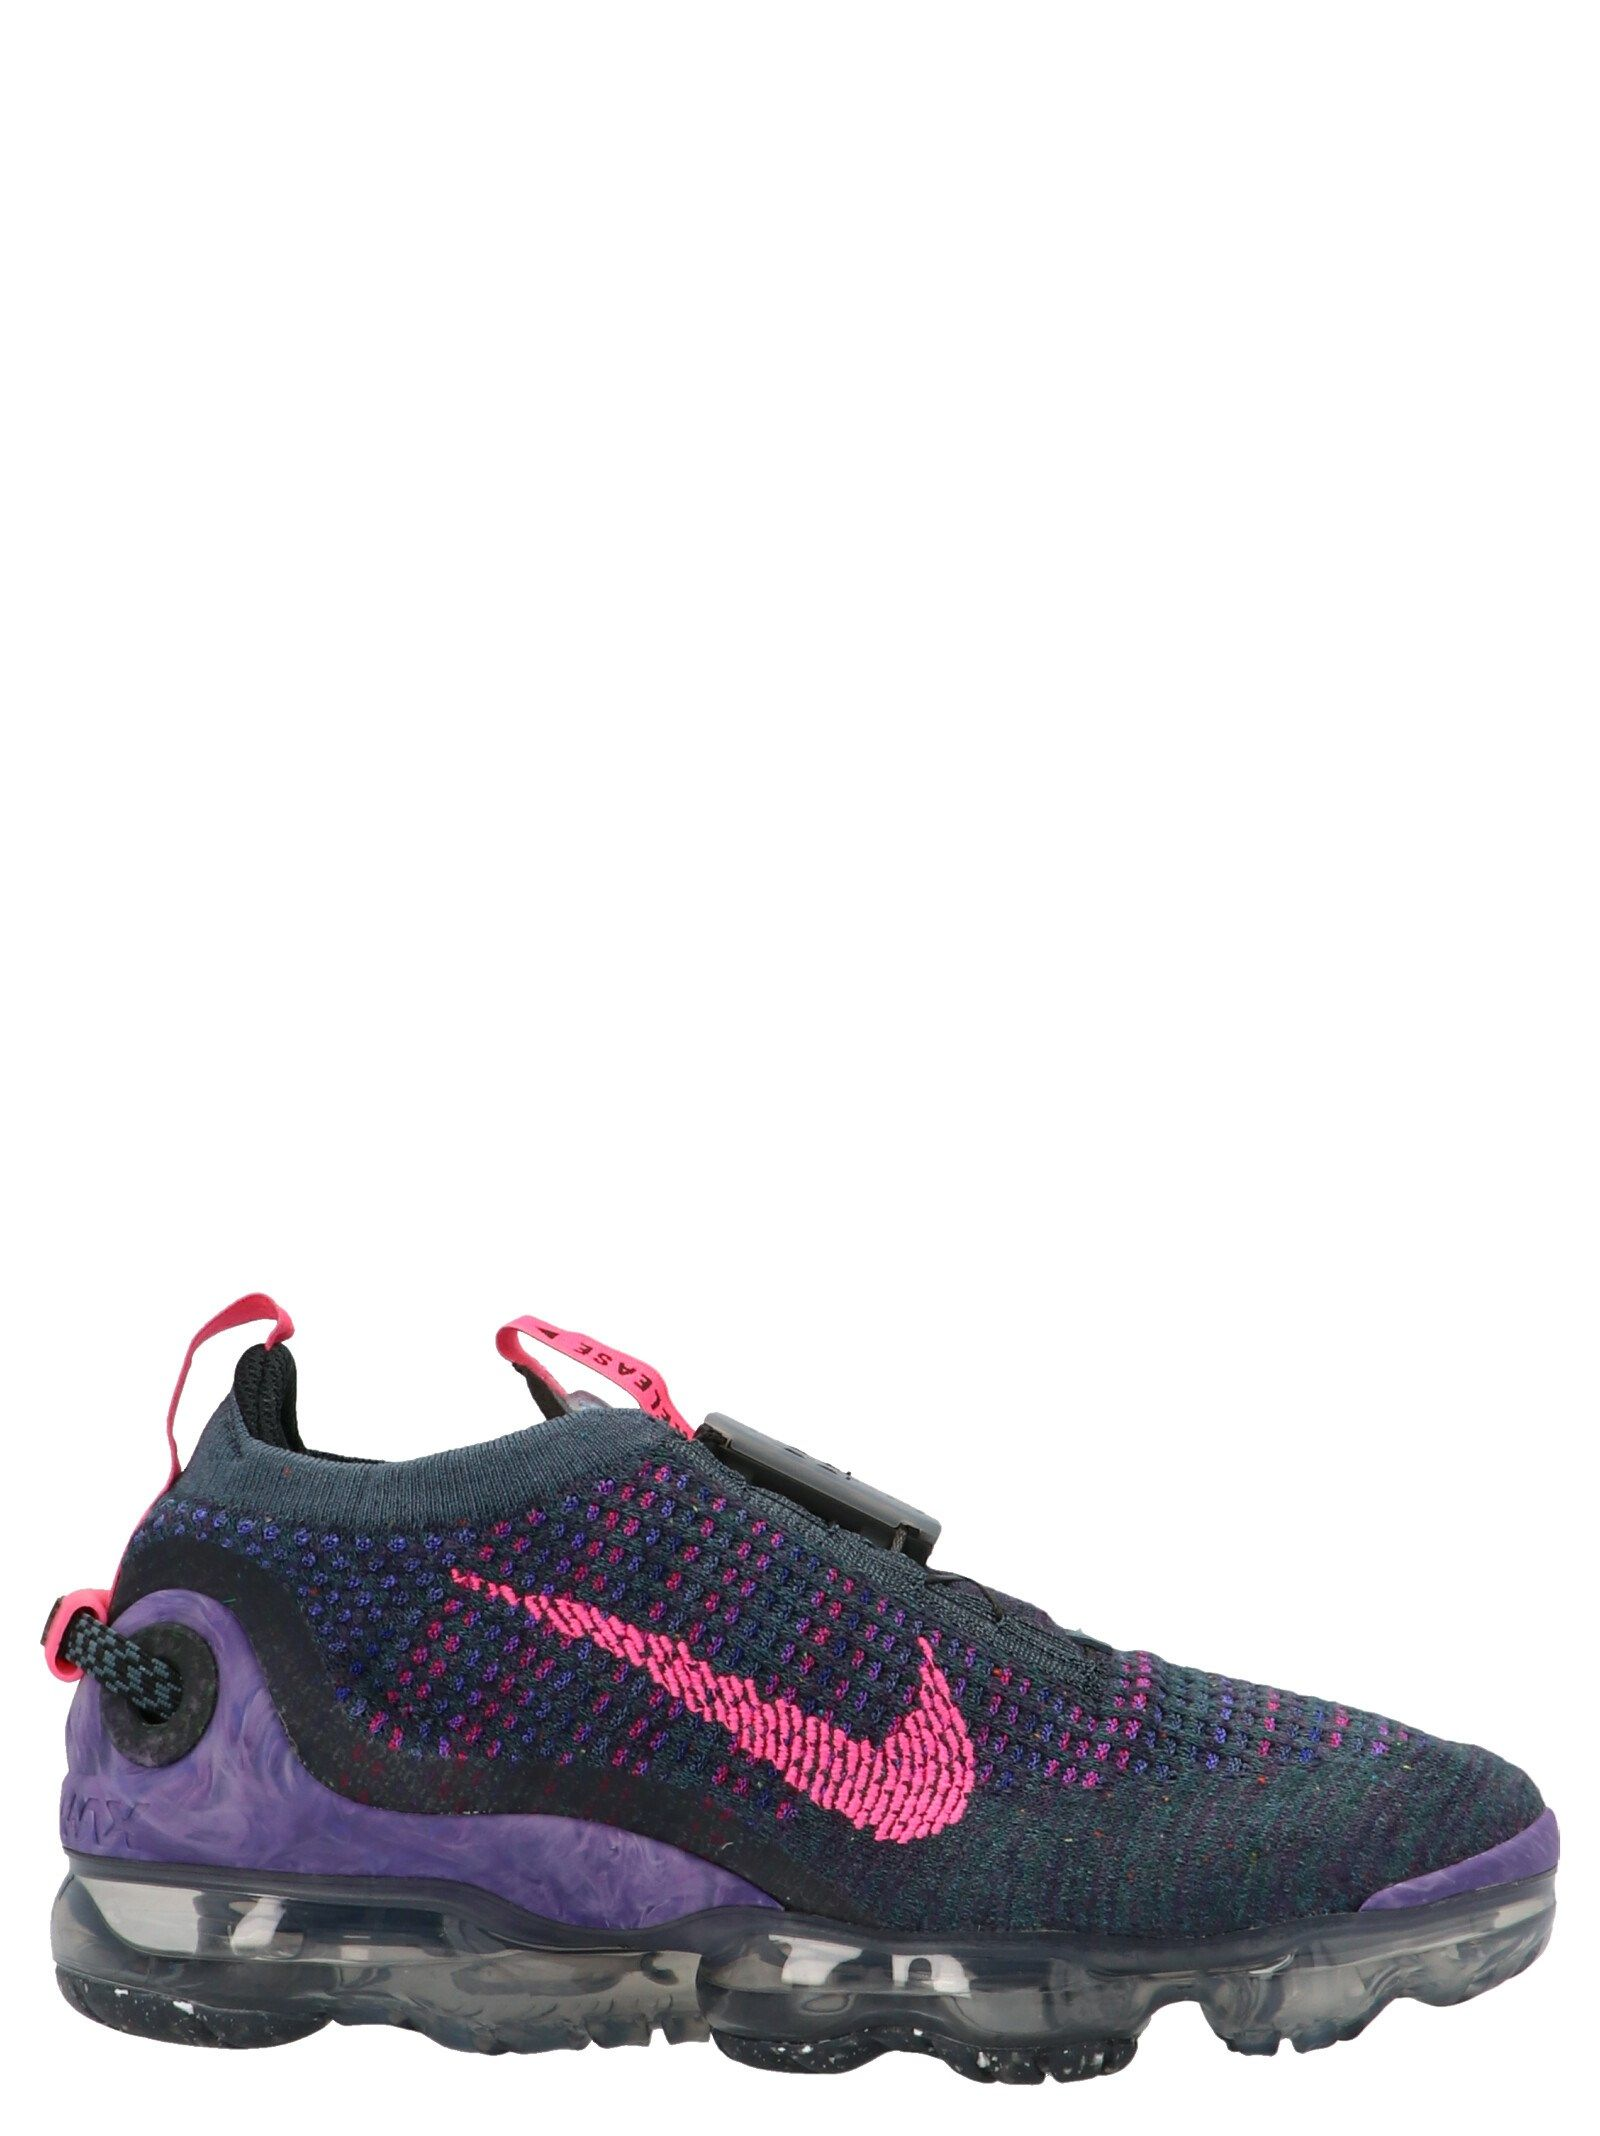 Nike Sneakers NIKE WOMEN'S CV8821502 MULTICOLOR OTHER MATERIALS SNEAKERS